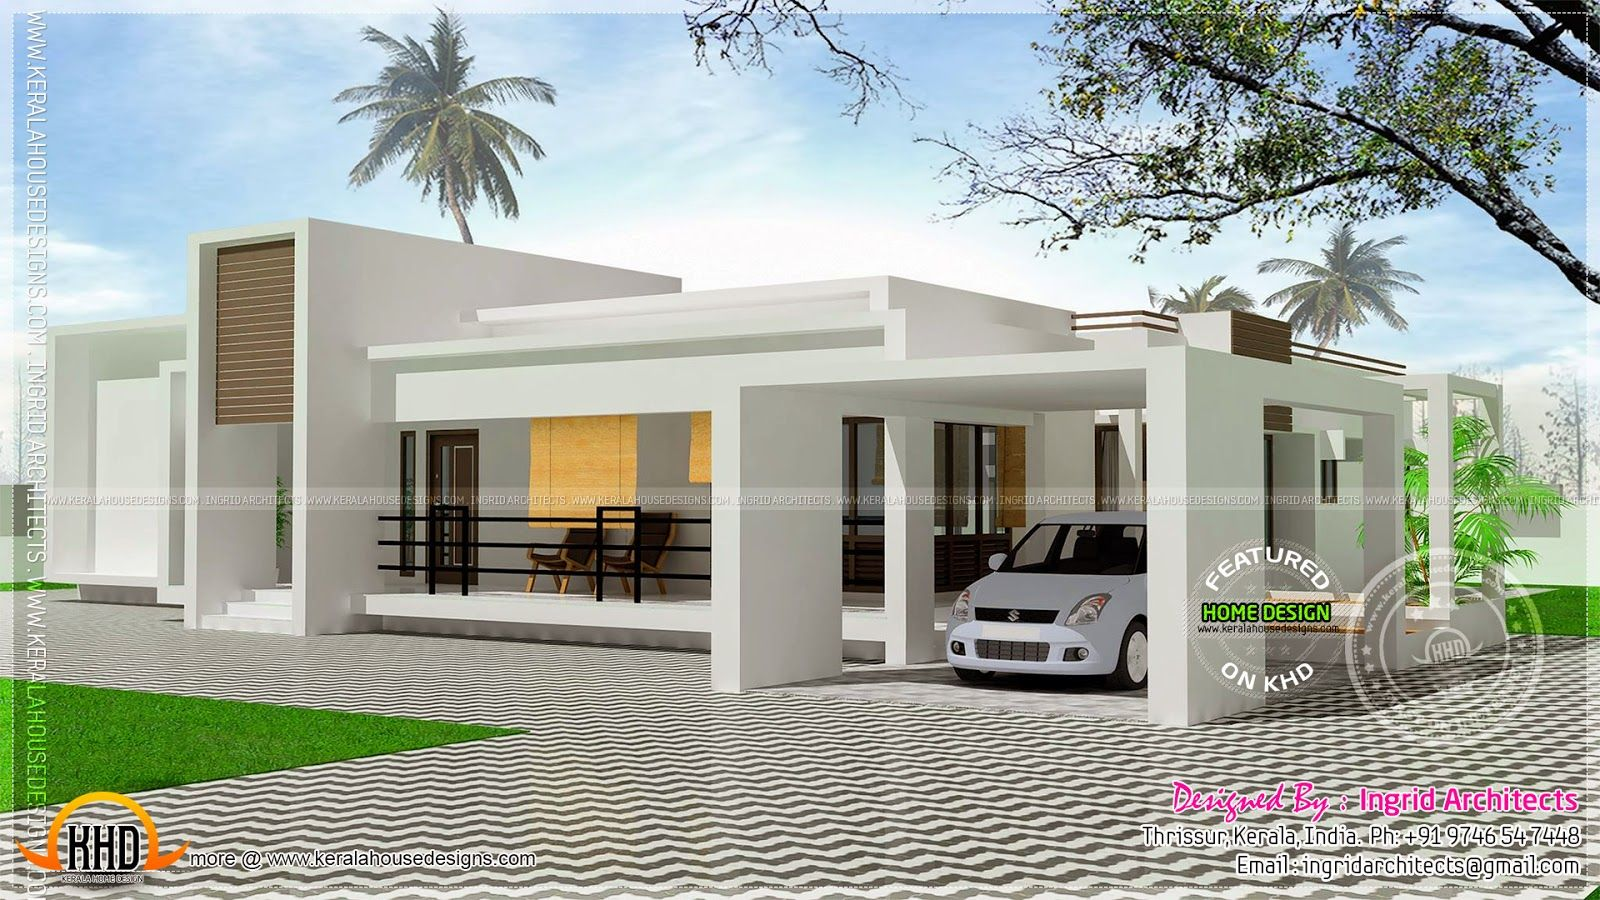 Enjoyable inspiration single story house plans with - Single story 4 bedroom modern house plans ...